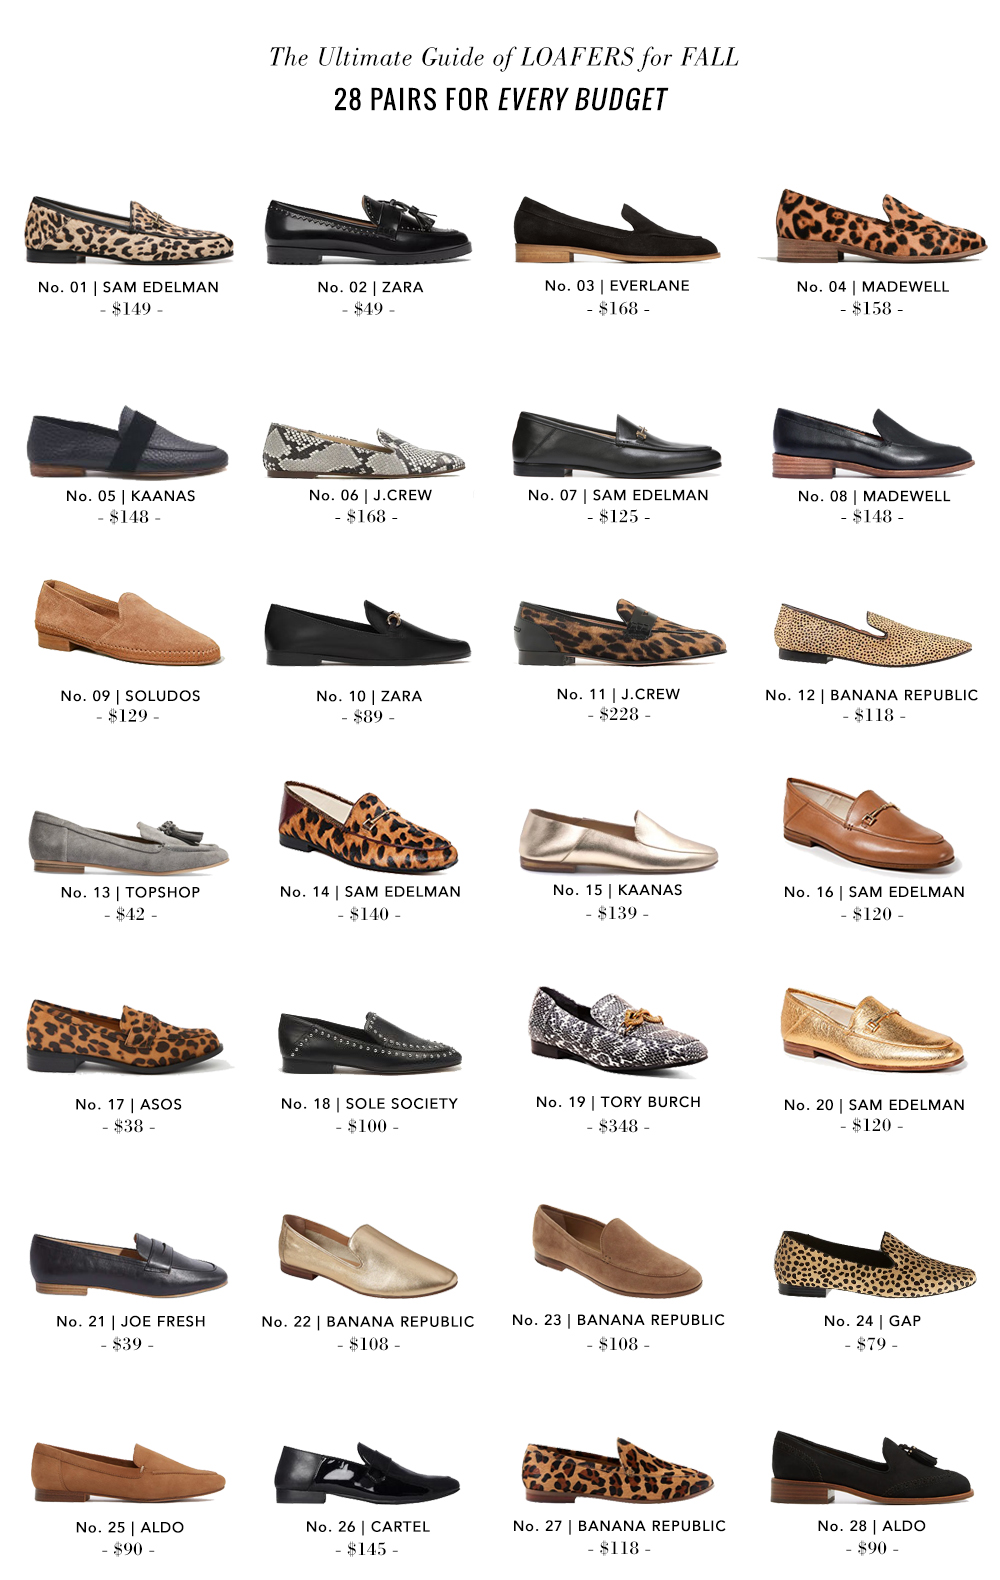 Shopping File: The Ultimate Guide of Loafers for Fall